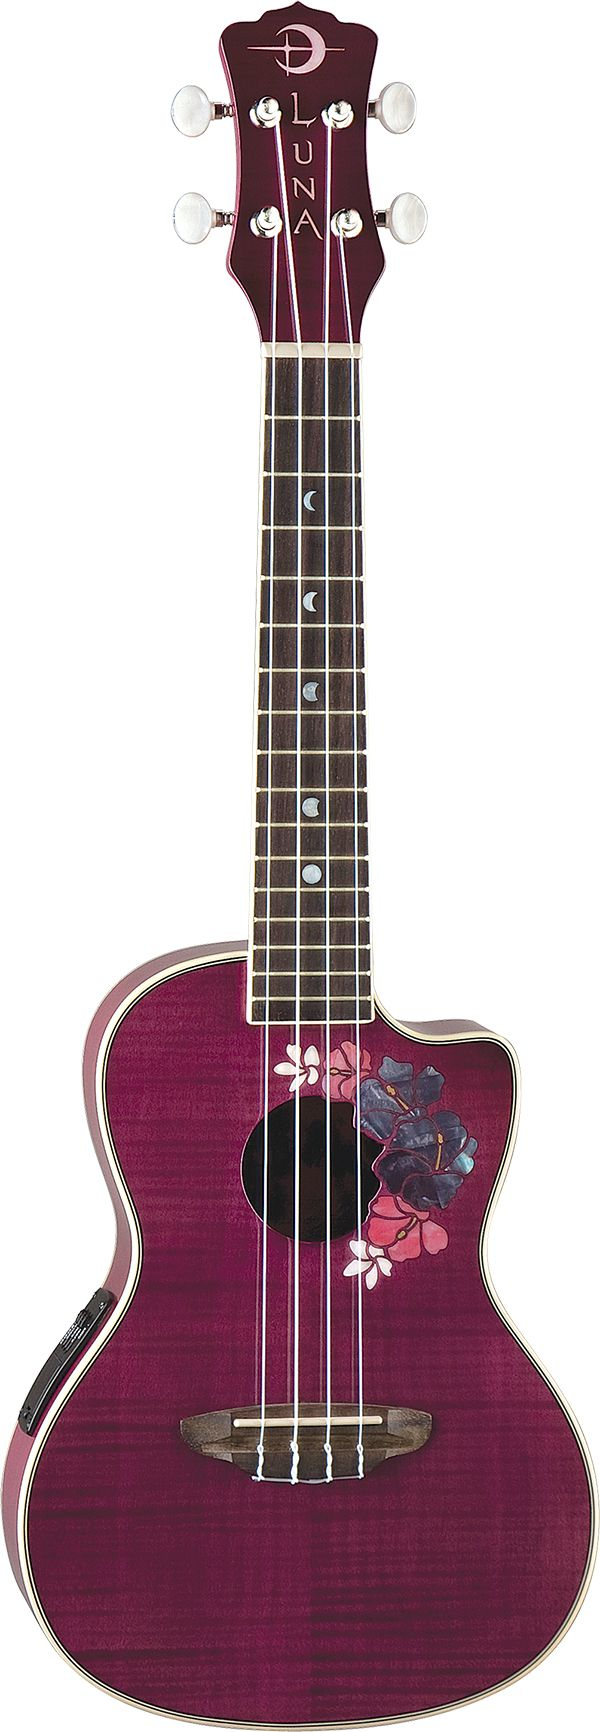 Want this for my birthday or Christmas in concert size, such a gorgeous ukulele